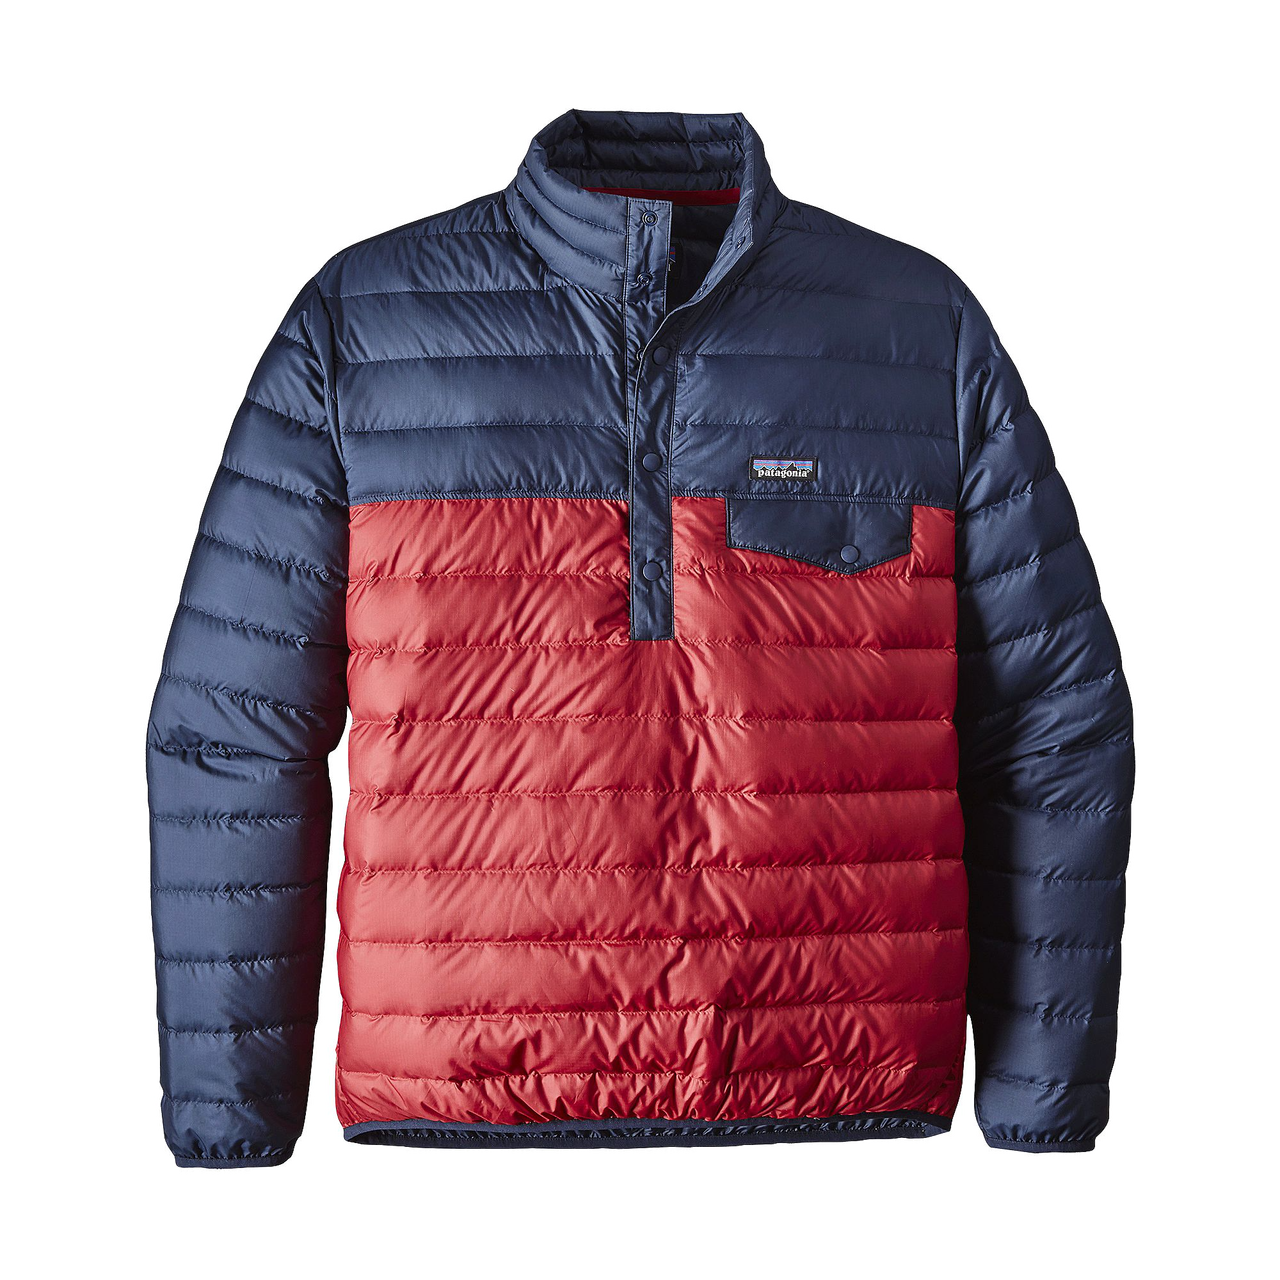 Patagonia Men s Down Snap-T Pullover Classic Red - Gear West Ski and Run 157fdcd038a4